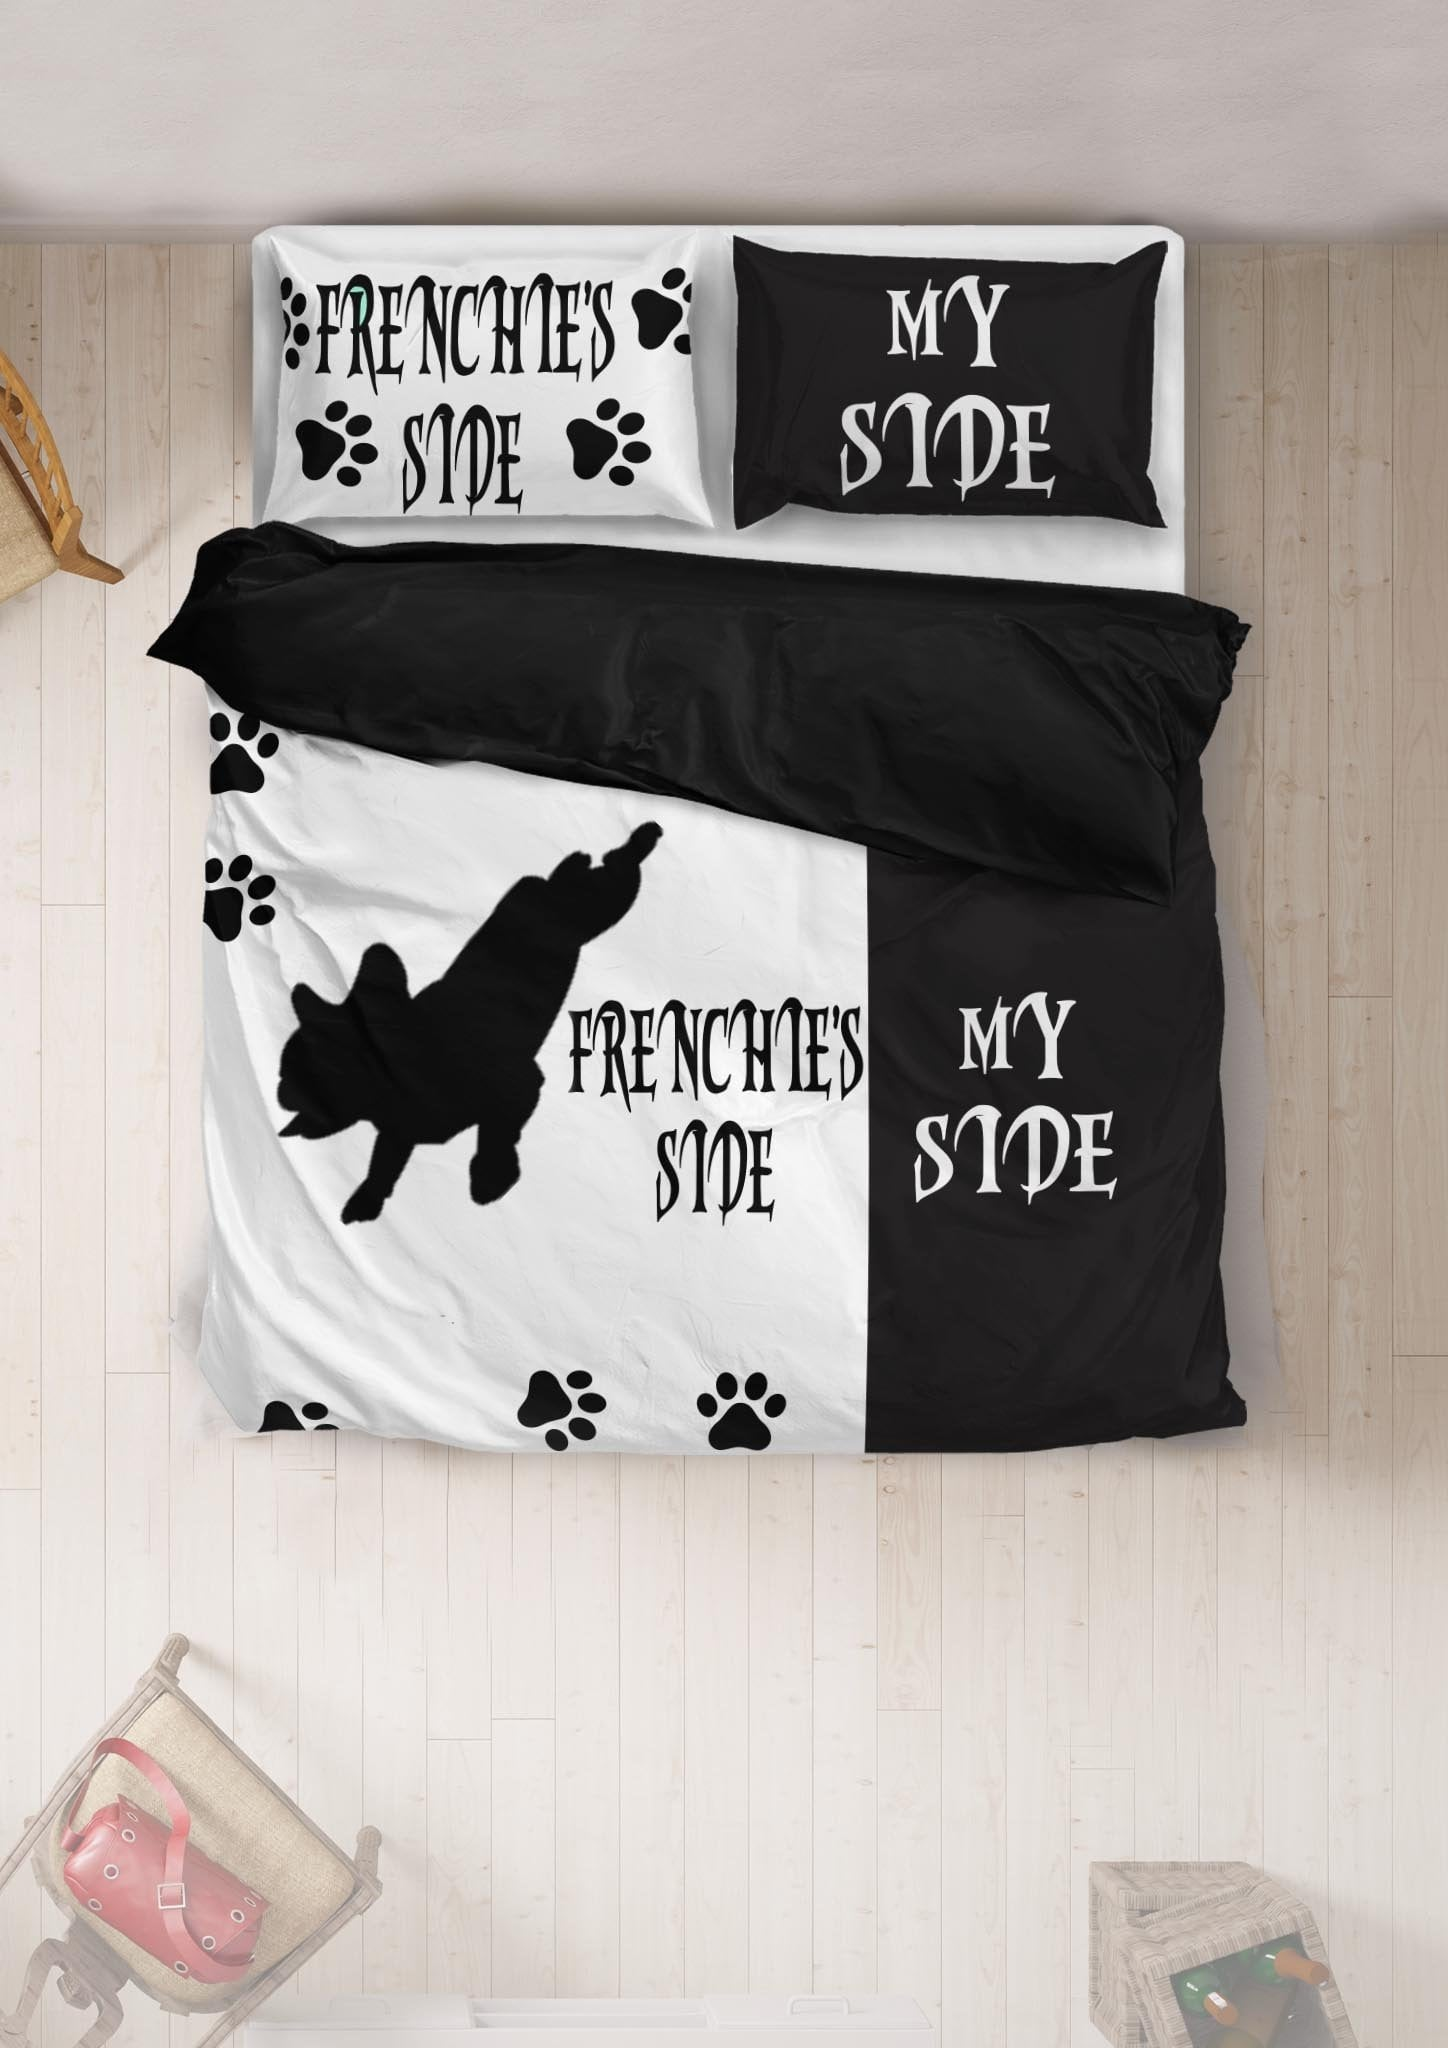 Frenchie's Side - Bedding Set - Frenchie Bulldog Shop